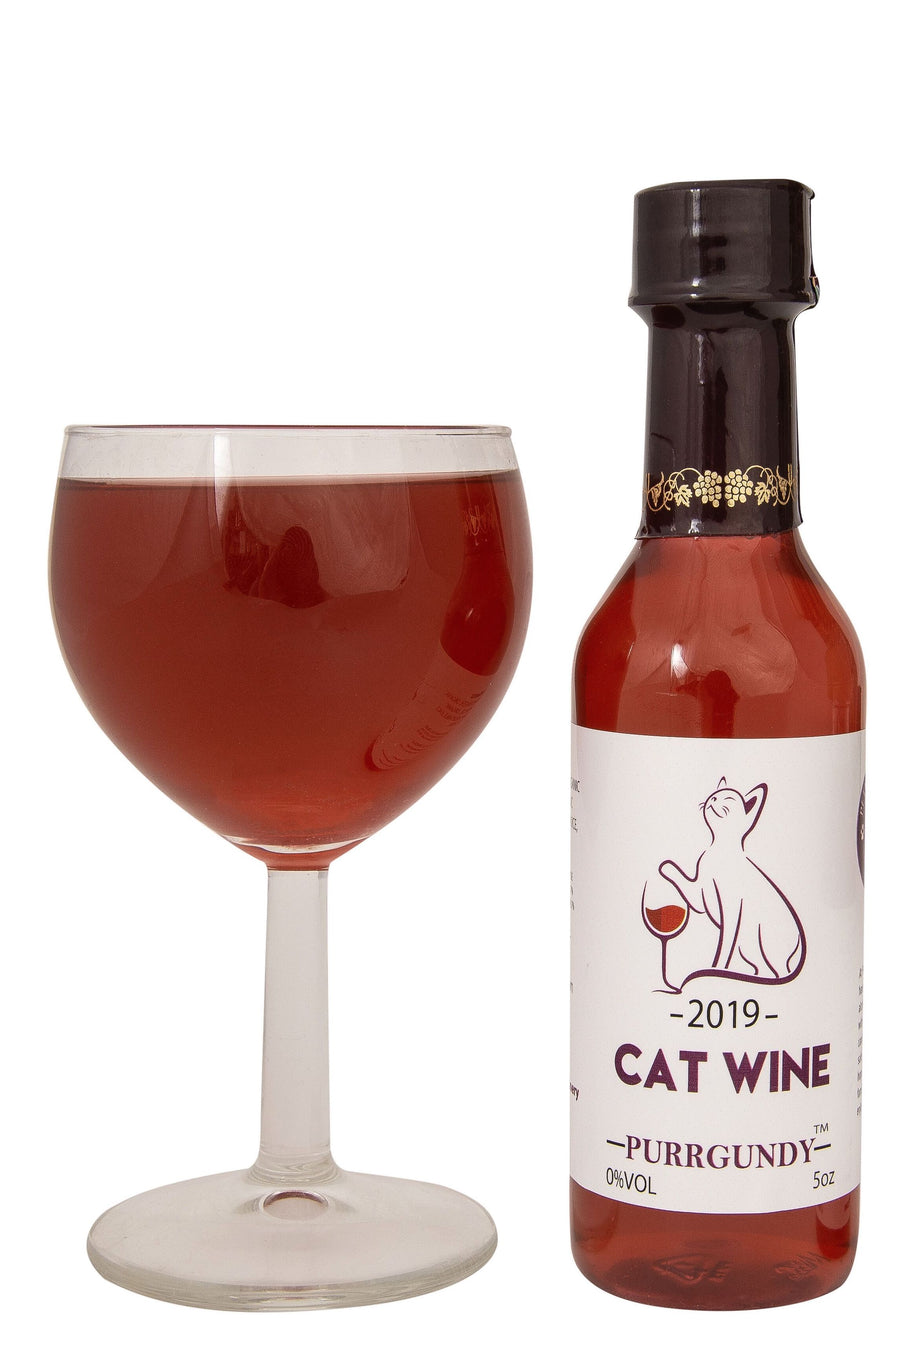 Pet Winery X CD - Purrgundy (5oz)